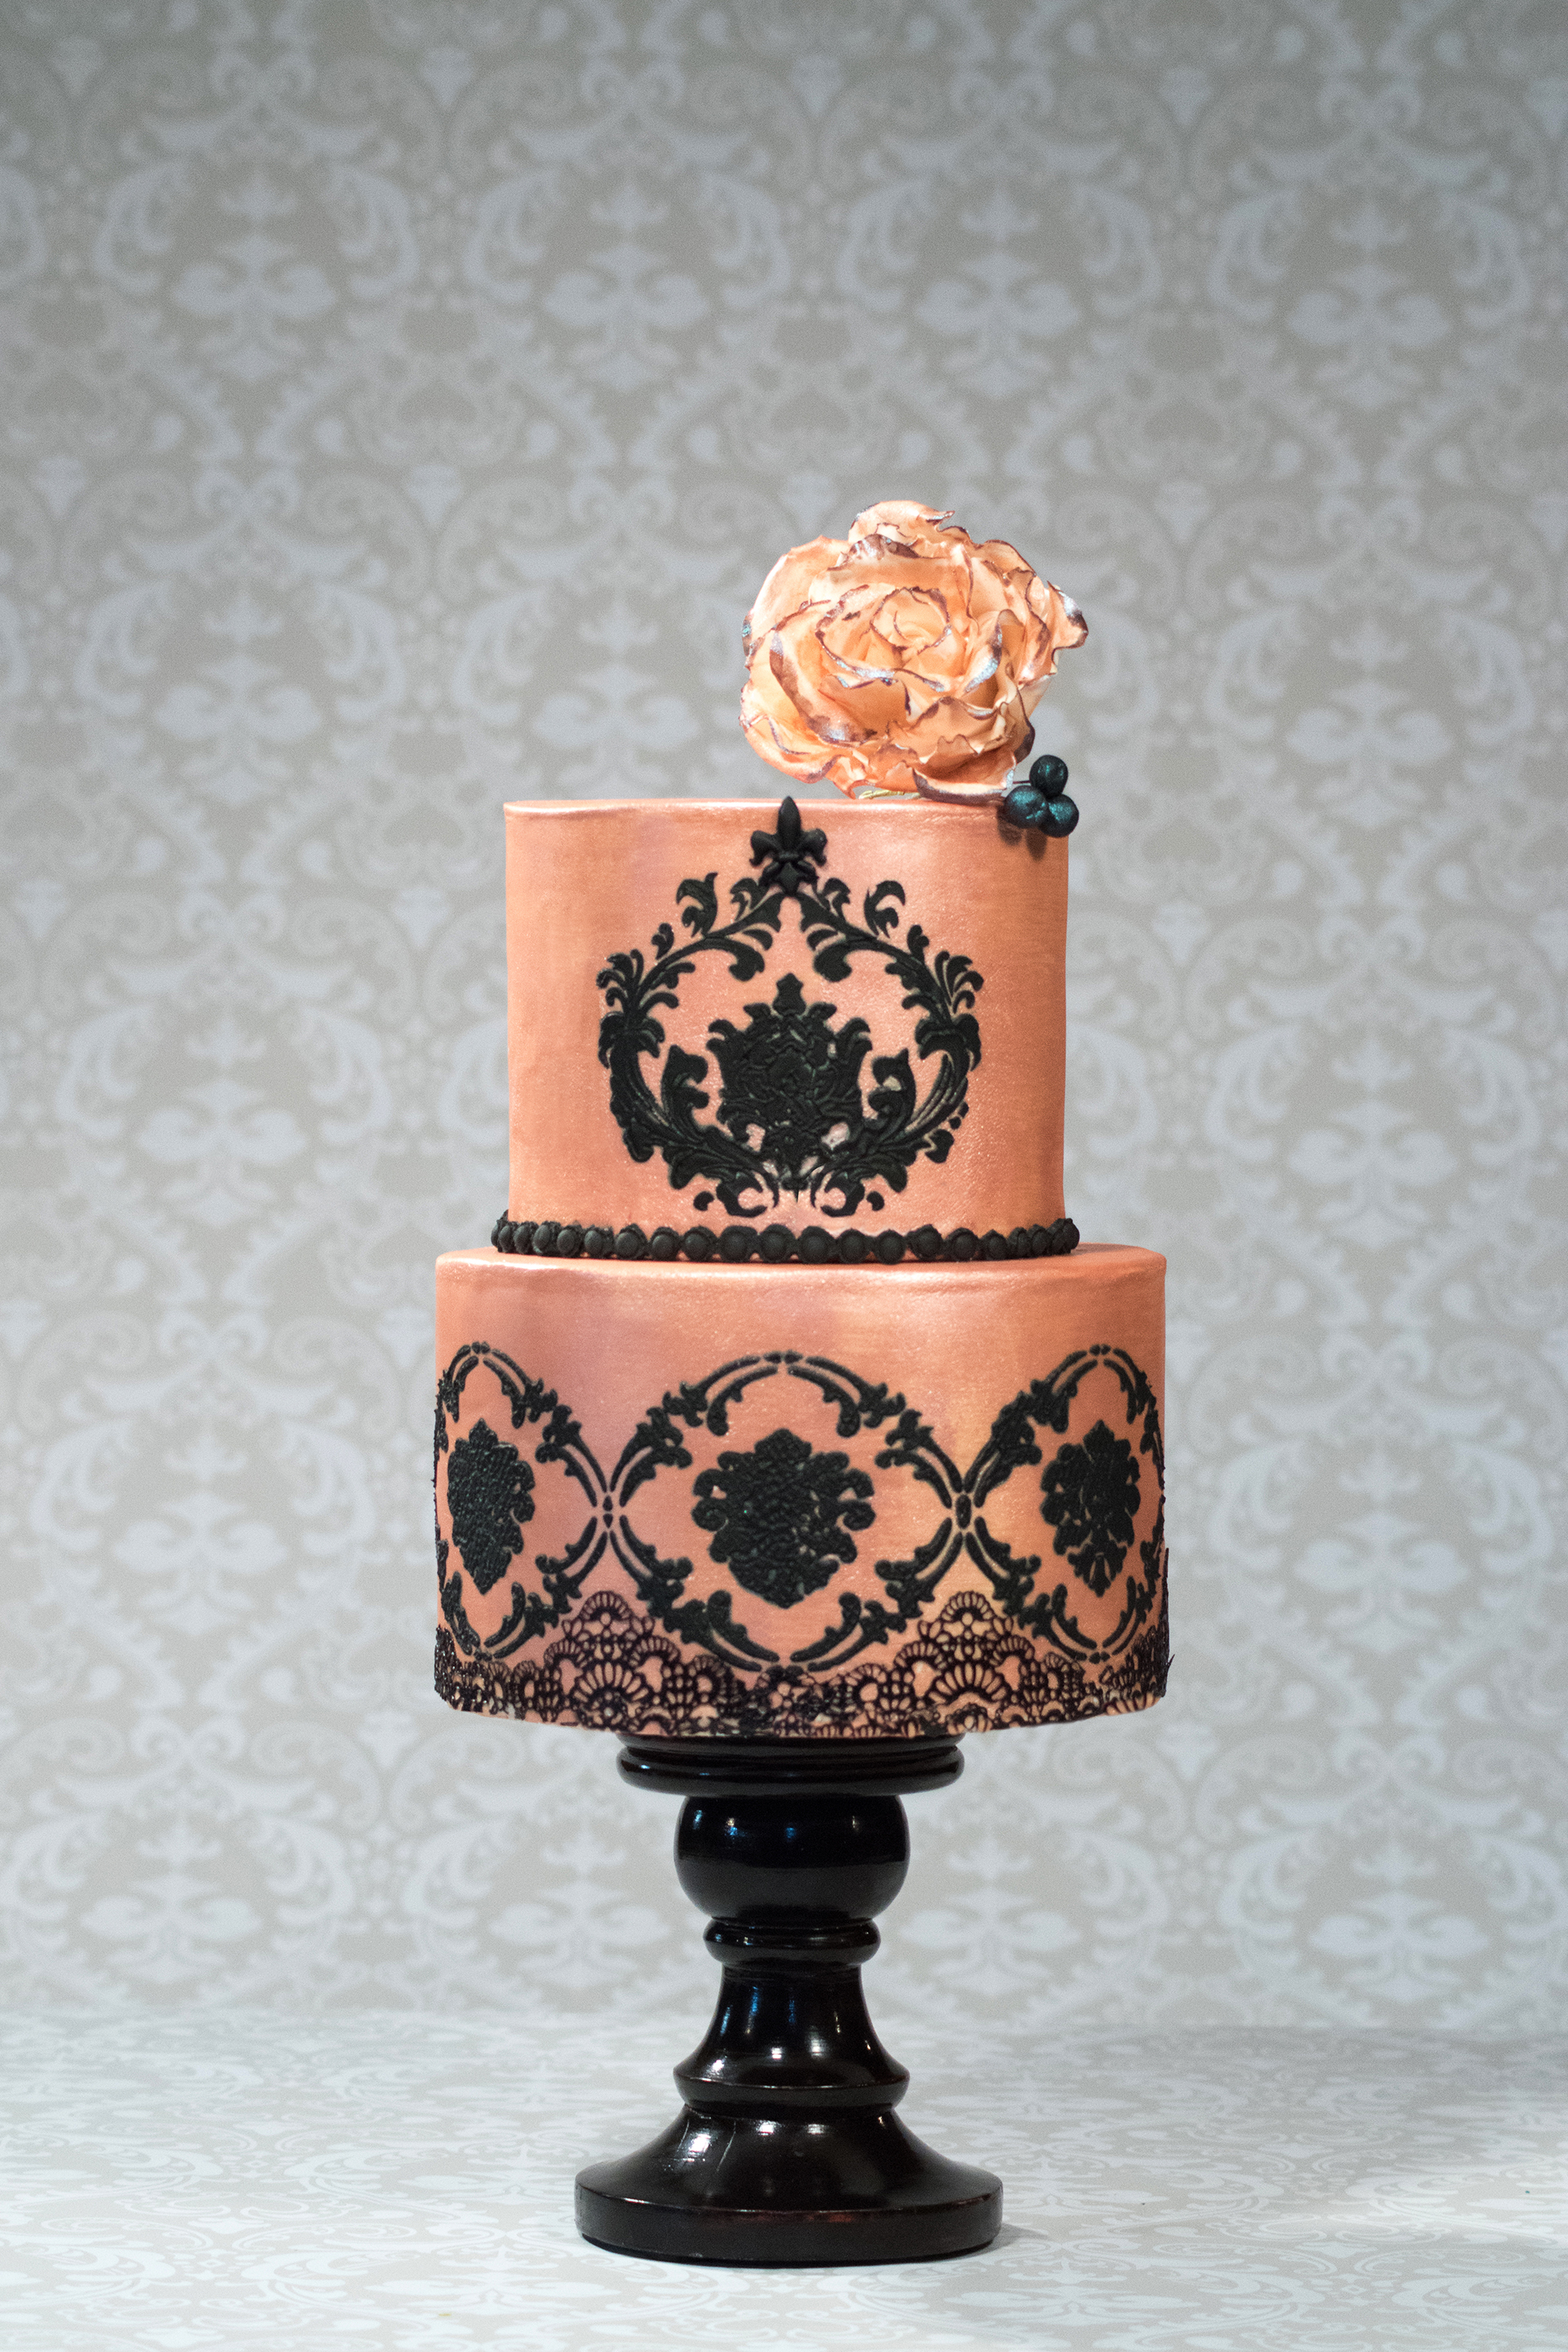 Orange and black fondant wedding cake